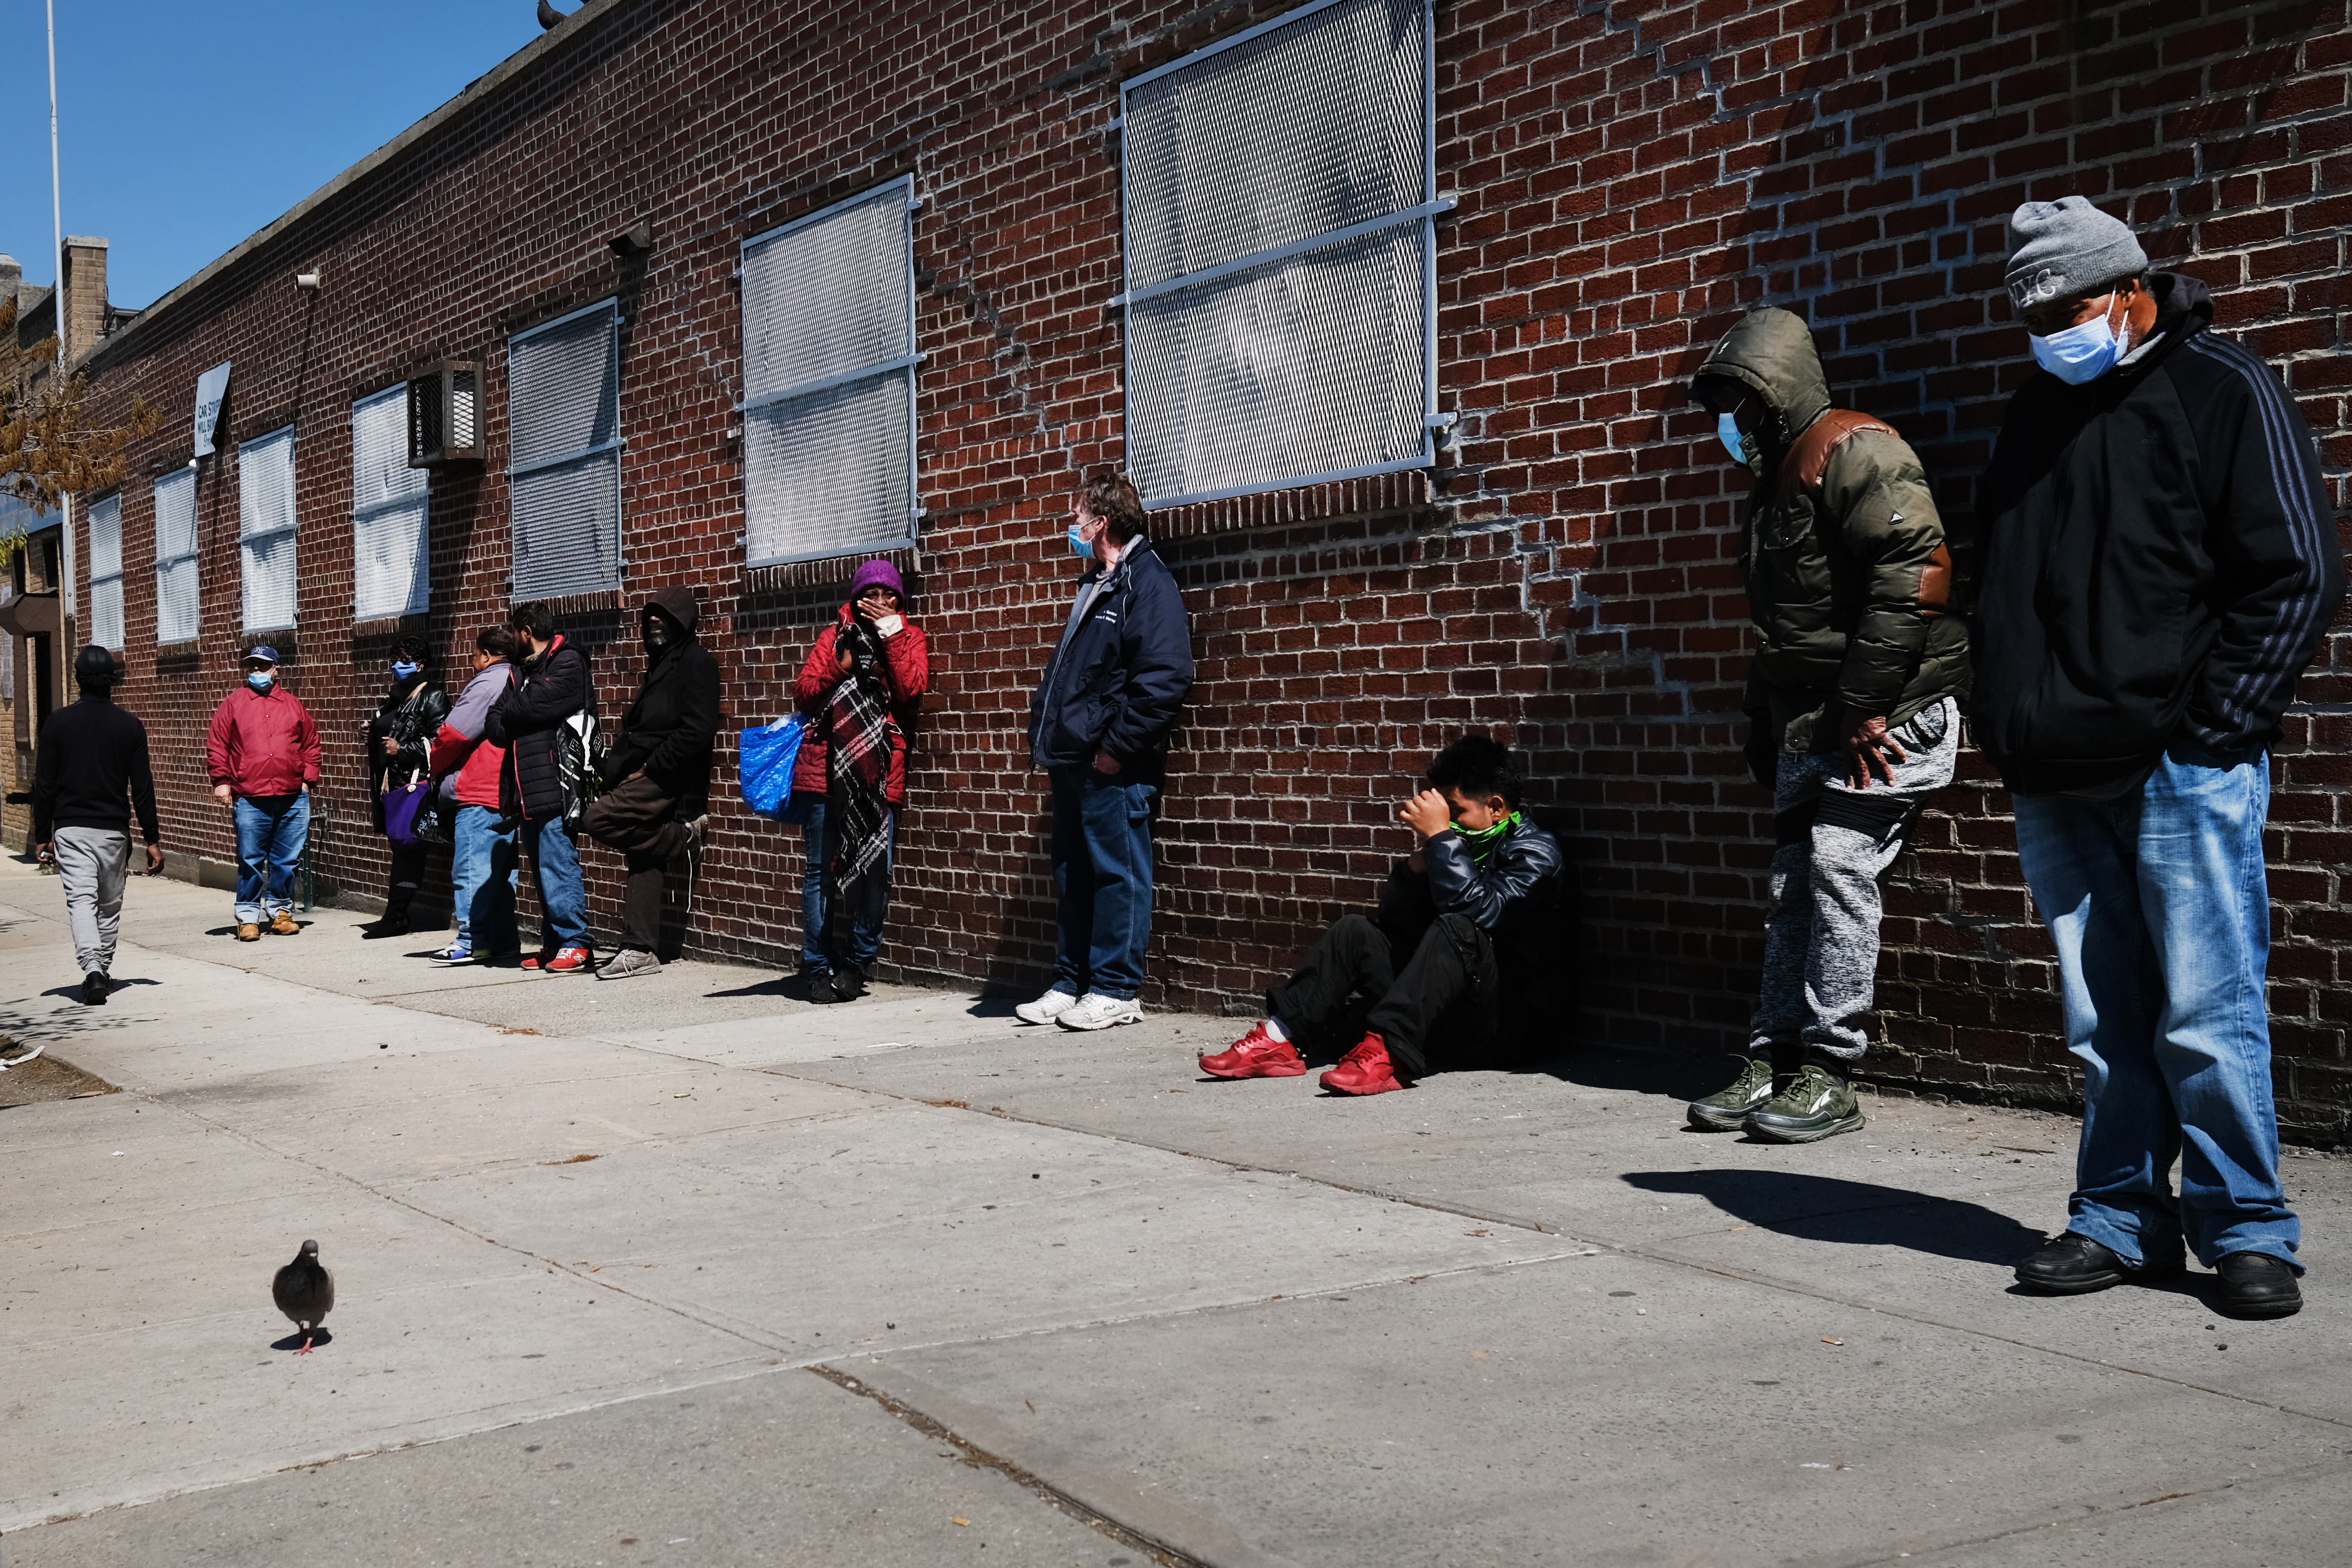 People wait in line to receive food at a food bank on April 28, 2020 in Brooklyn, New York.